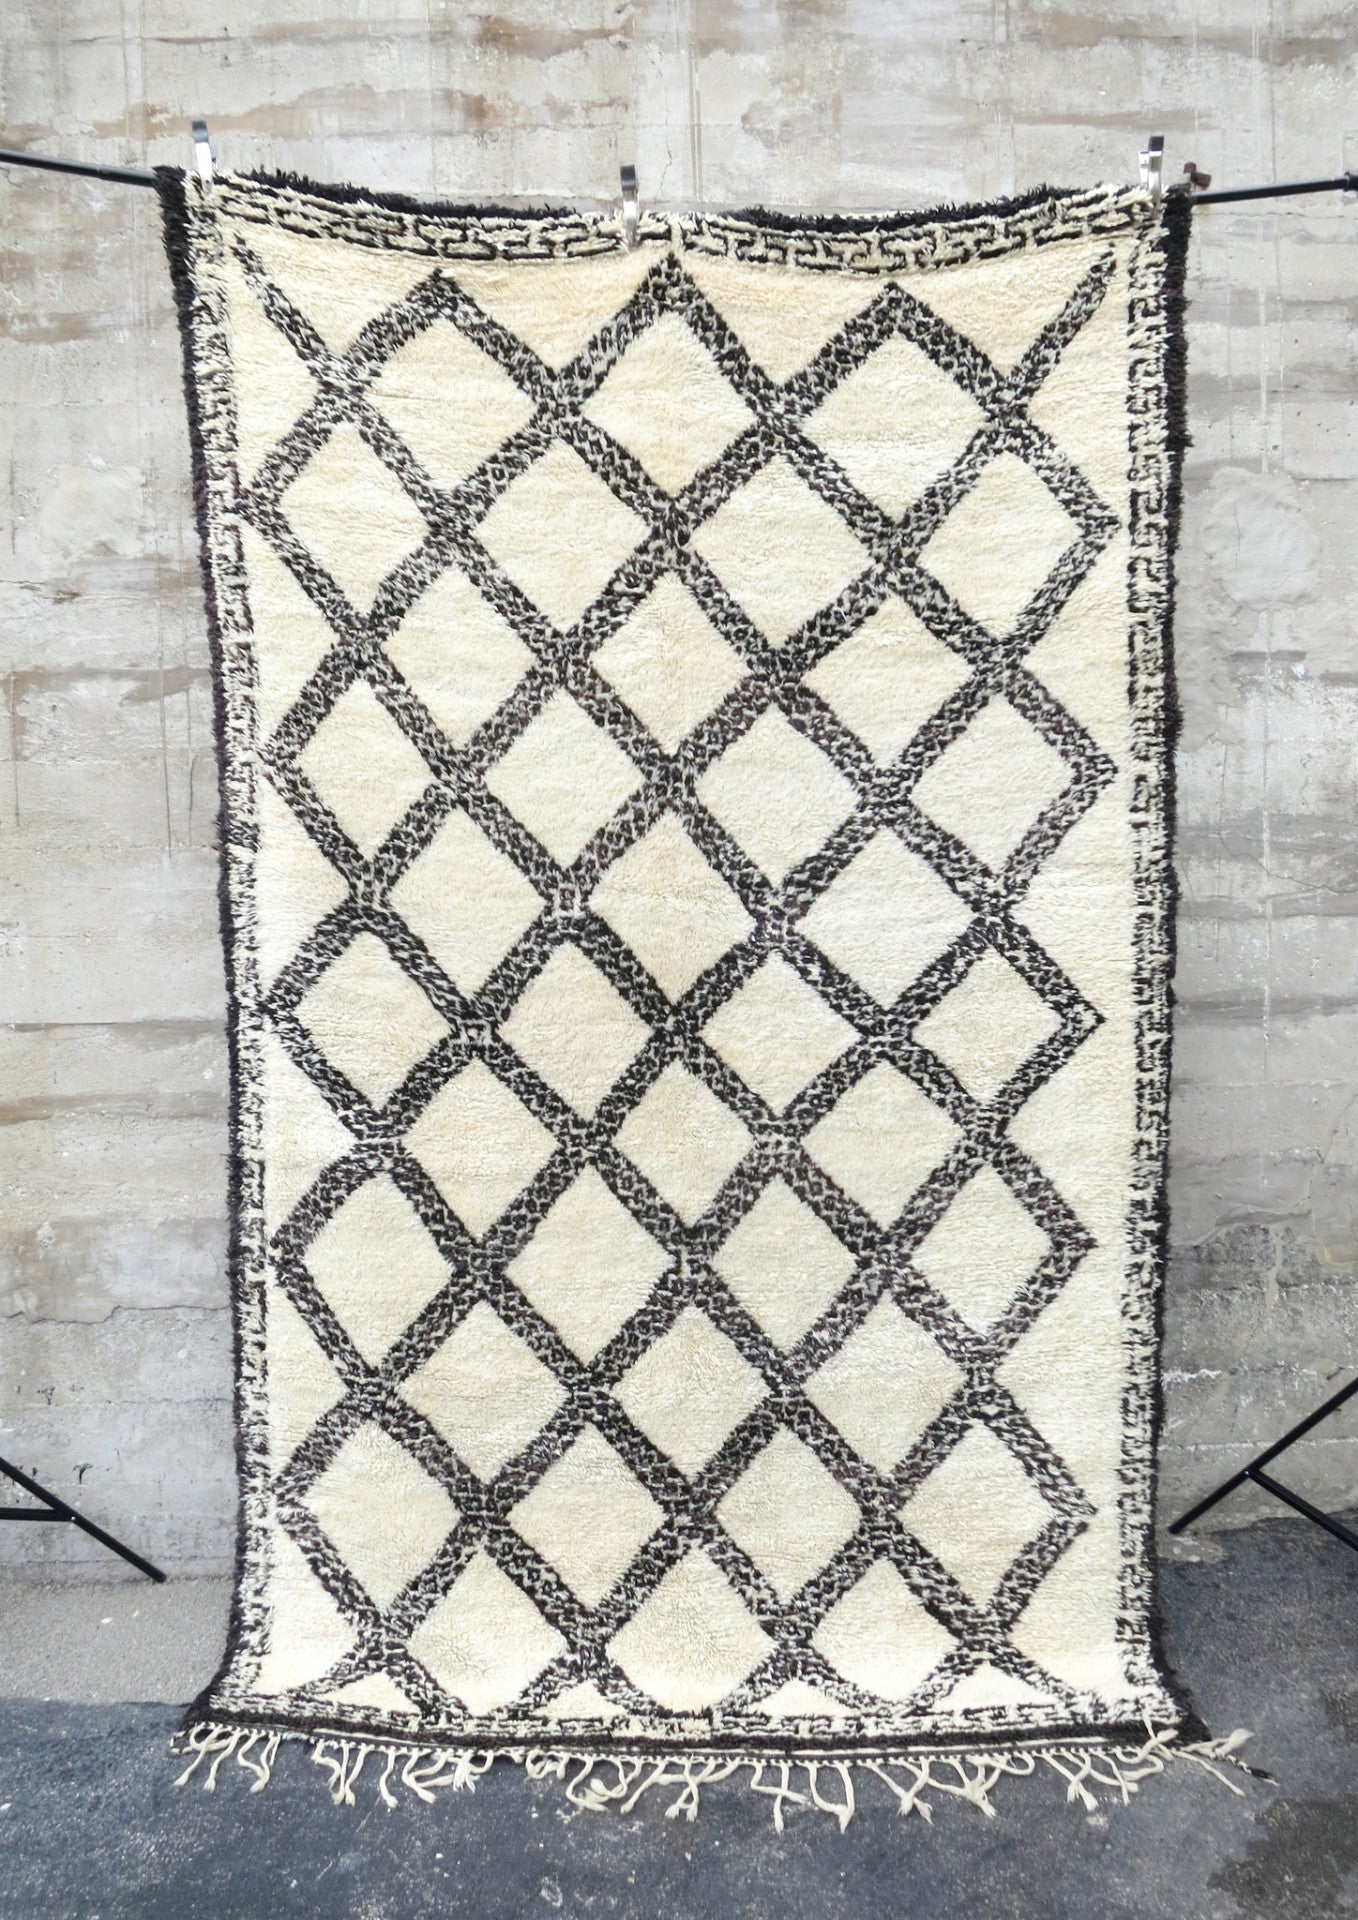 CROSS ROADS  Vintage Moroccan Beni Ourain Rug - Maven Collection